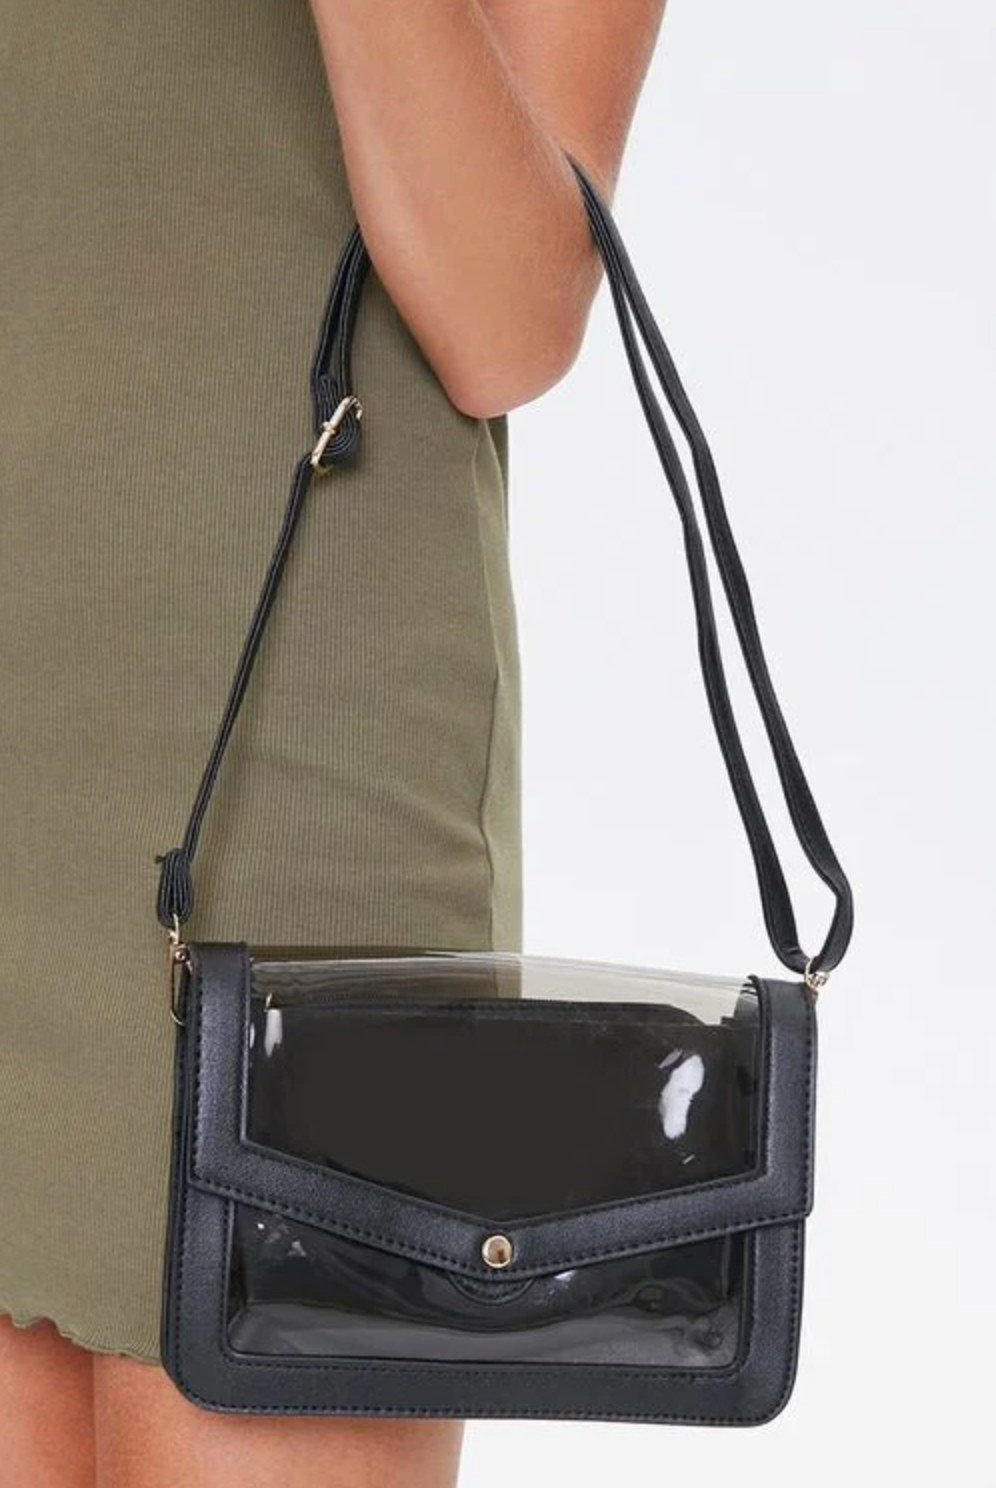 Model carrying the bag in black